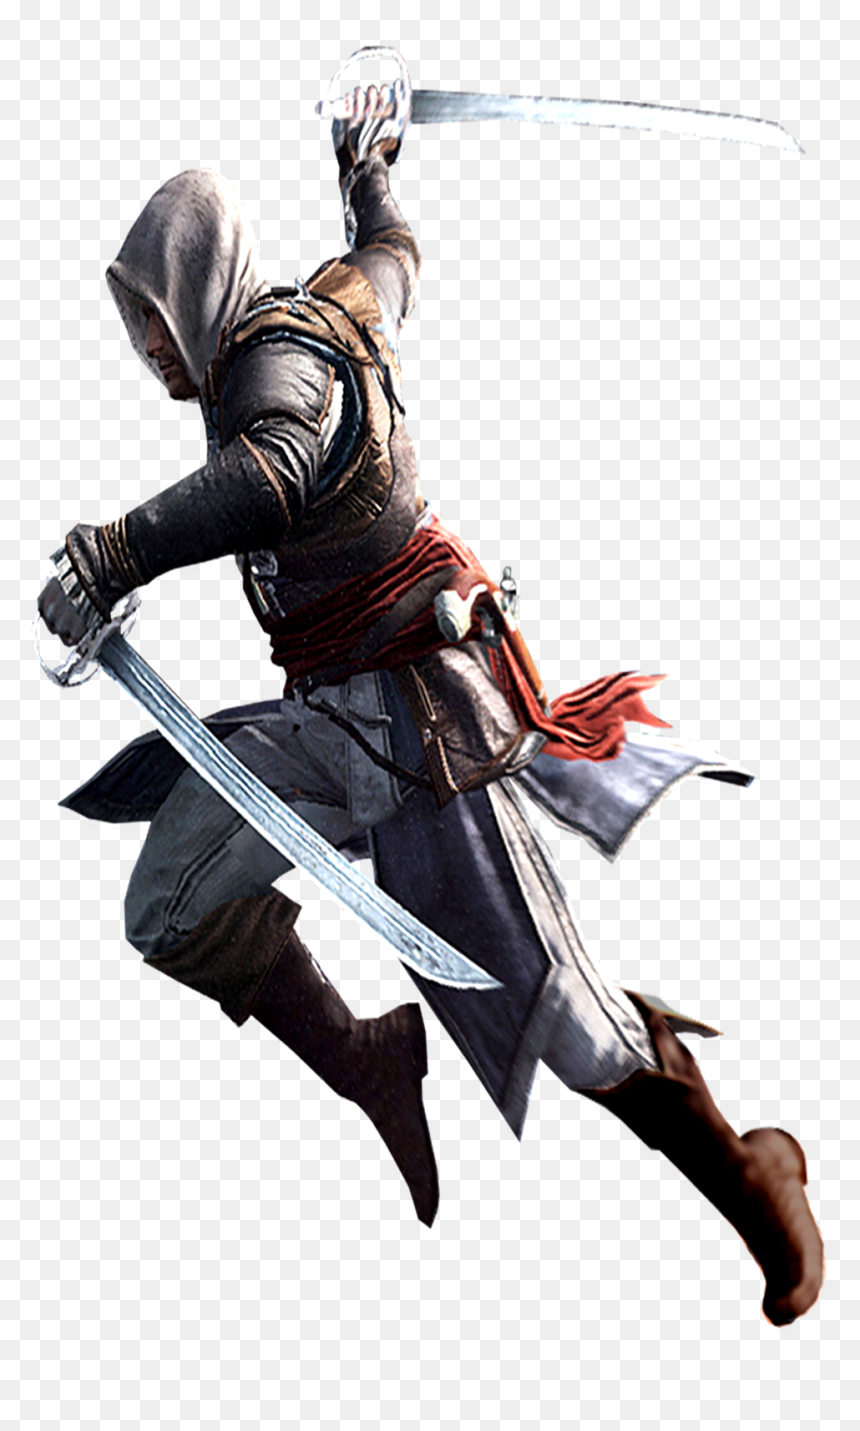 Assassin S Creed Png Transparent Png Vhv